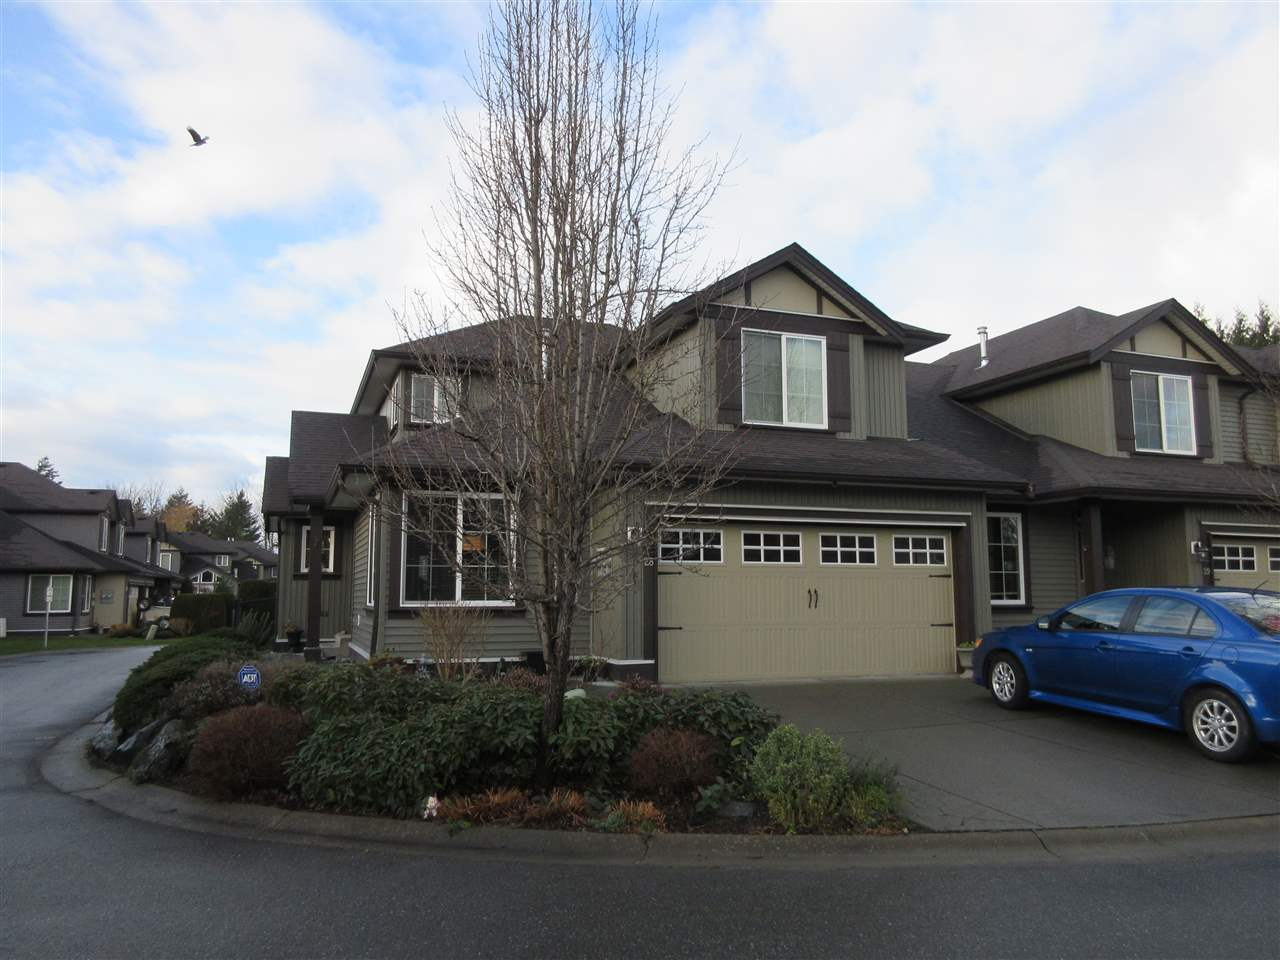 Beautiful end unit in Ranchero Estates! Bright & spacious with 3 bedrooms, 3 baths & loft. Open floor plan, hardwood, laminate & tile floors, vaulted ceiling, kitchen has large island & eating area, gas fireplace in living room, separate dining room, master on the main with 3 piece en suite. Huge loft above with 2 bedrooms & full bath. Extra large patio in the back that's private & fenced. Air conditioned & double garage with parking for 2 more!